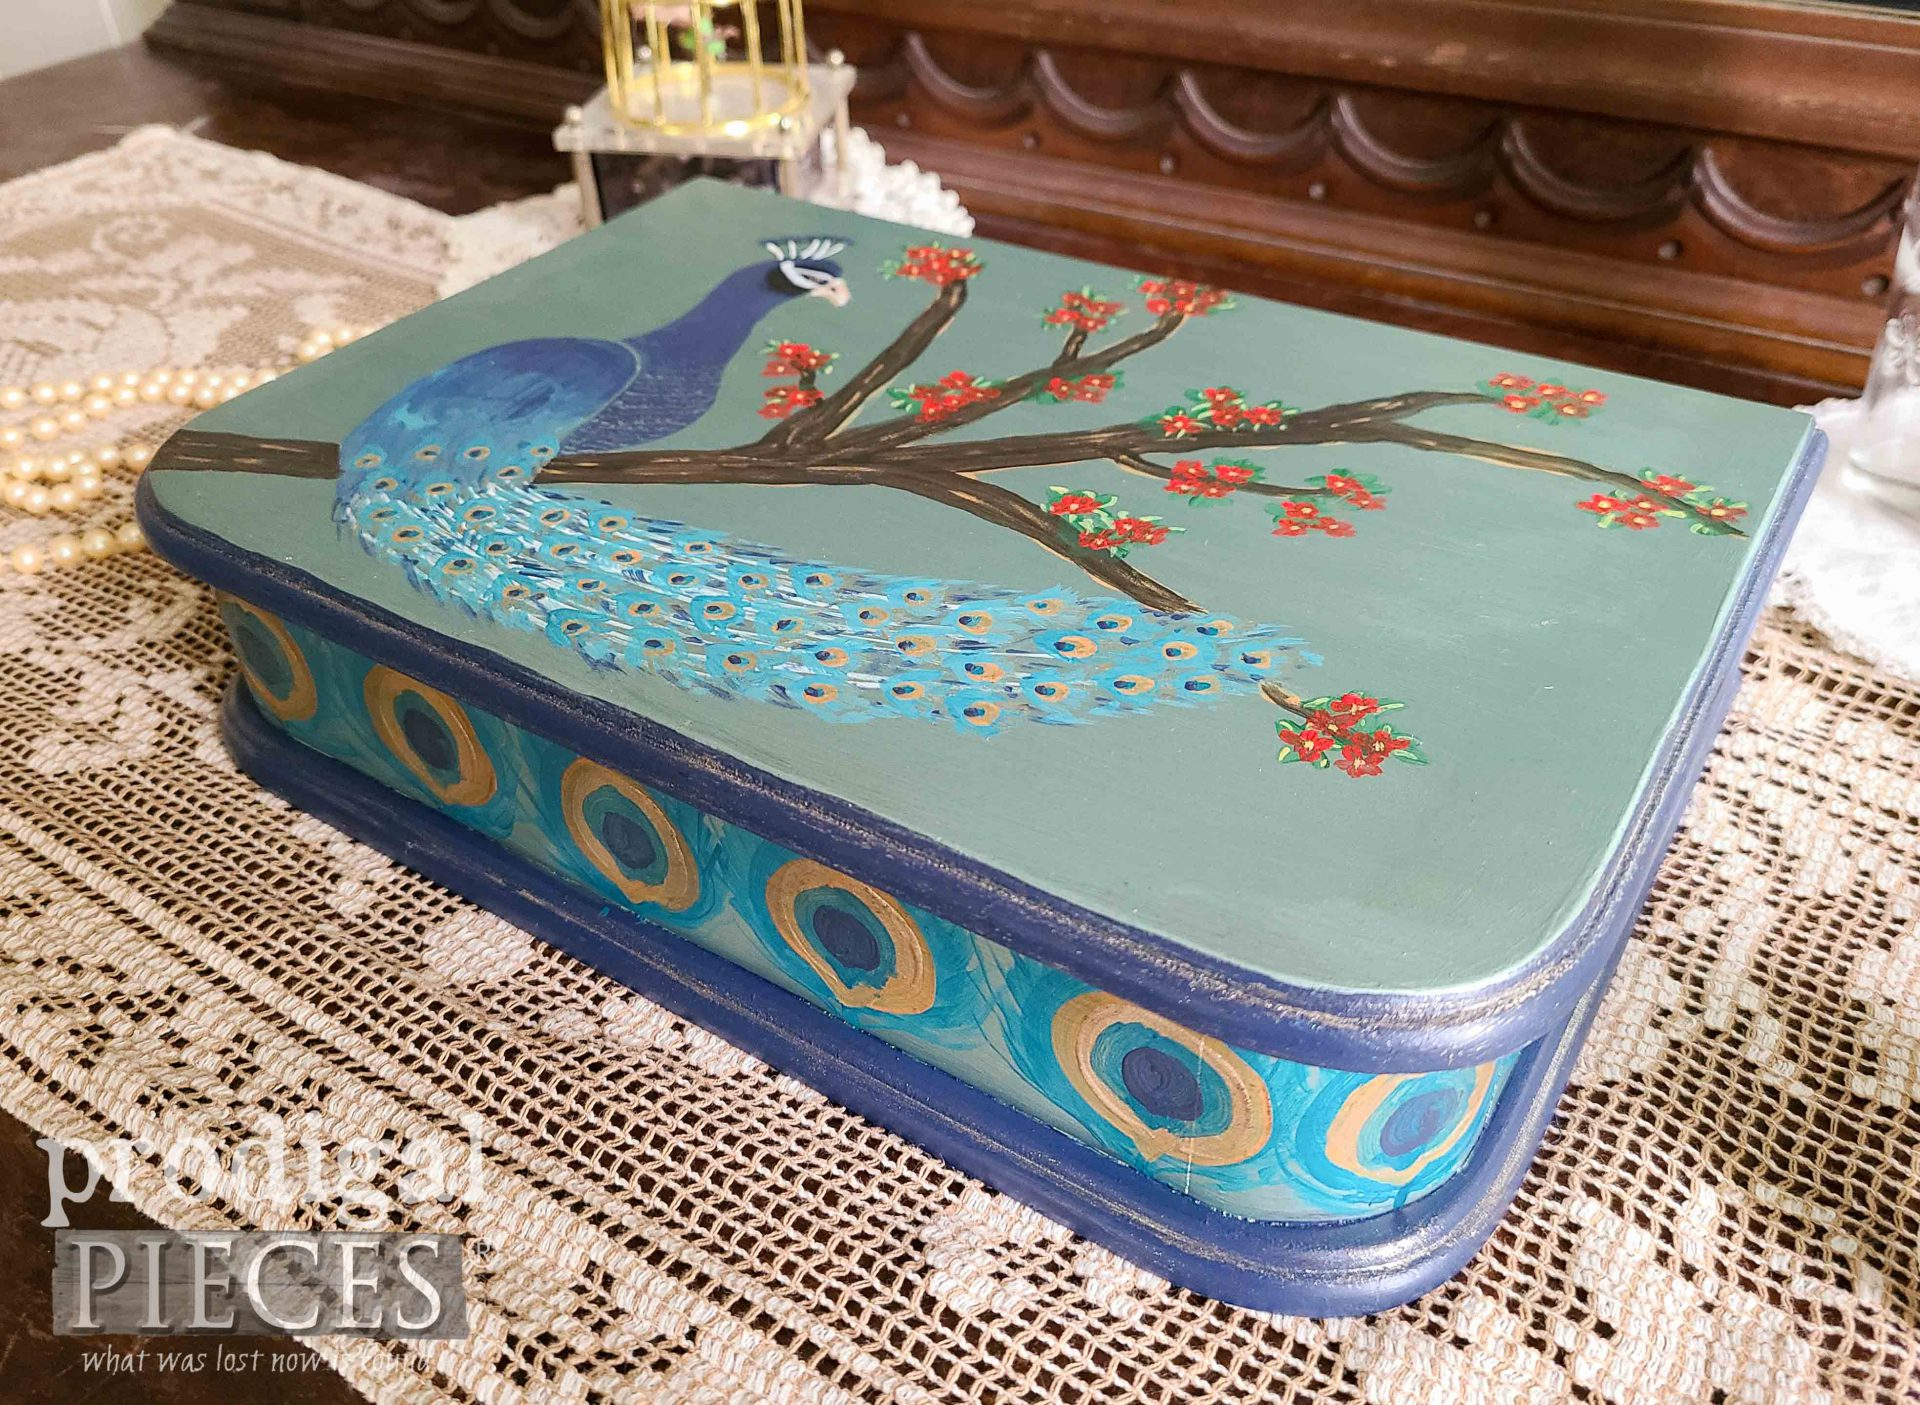 Hand-Painted Peacock Jewelry Box by Larissa of Prodigal Pieces | prodigalpieces.com #prodigalpieces #jewelry #diy #home #homedecor